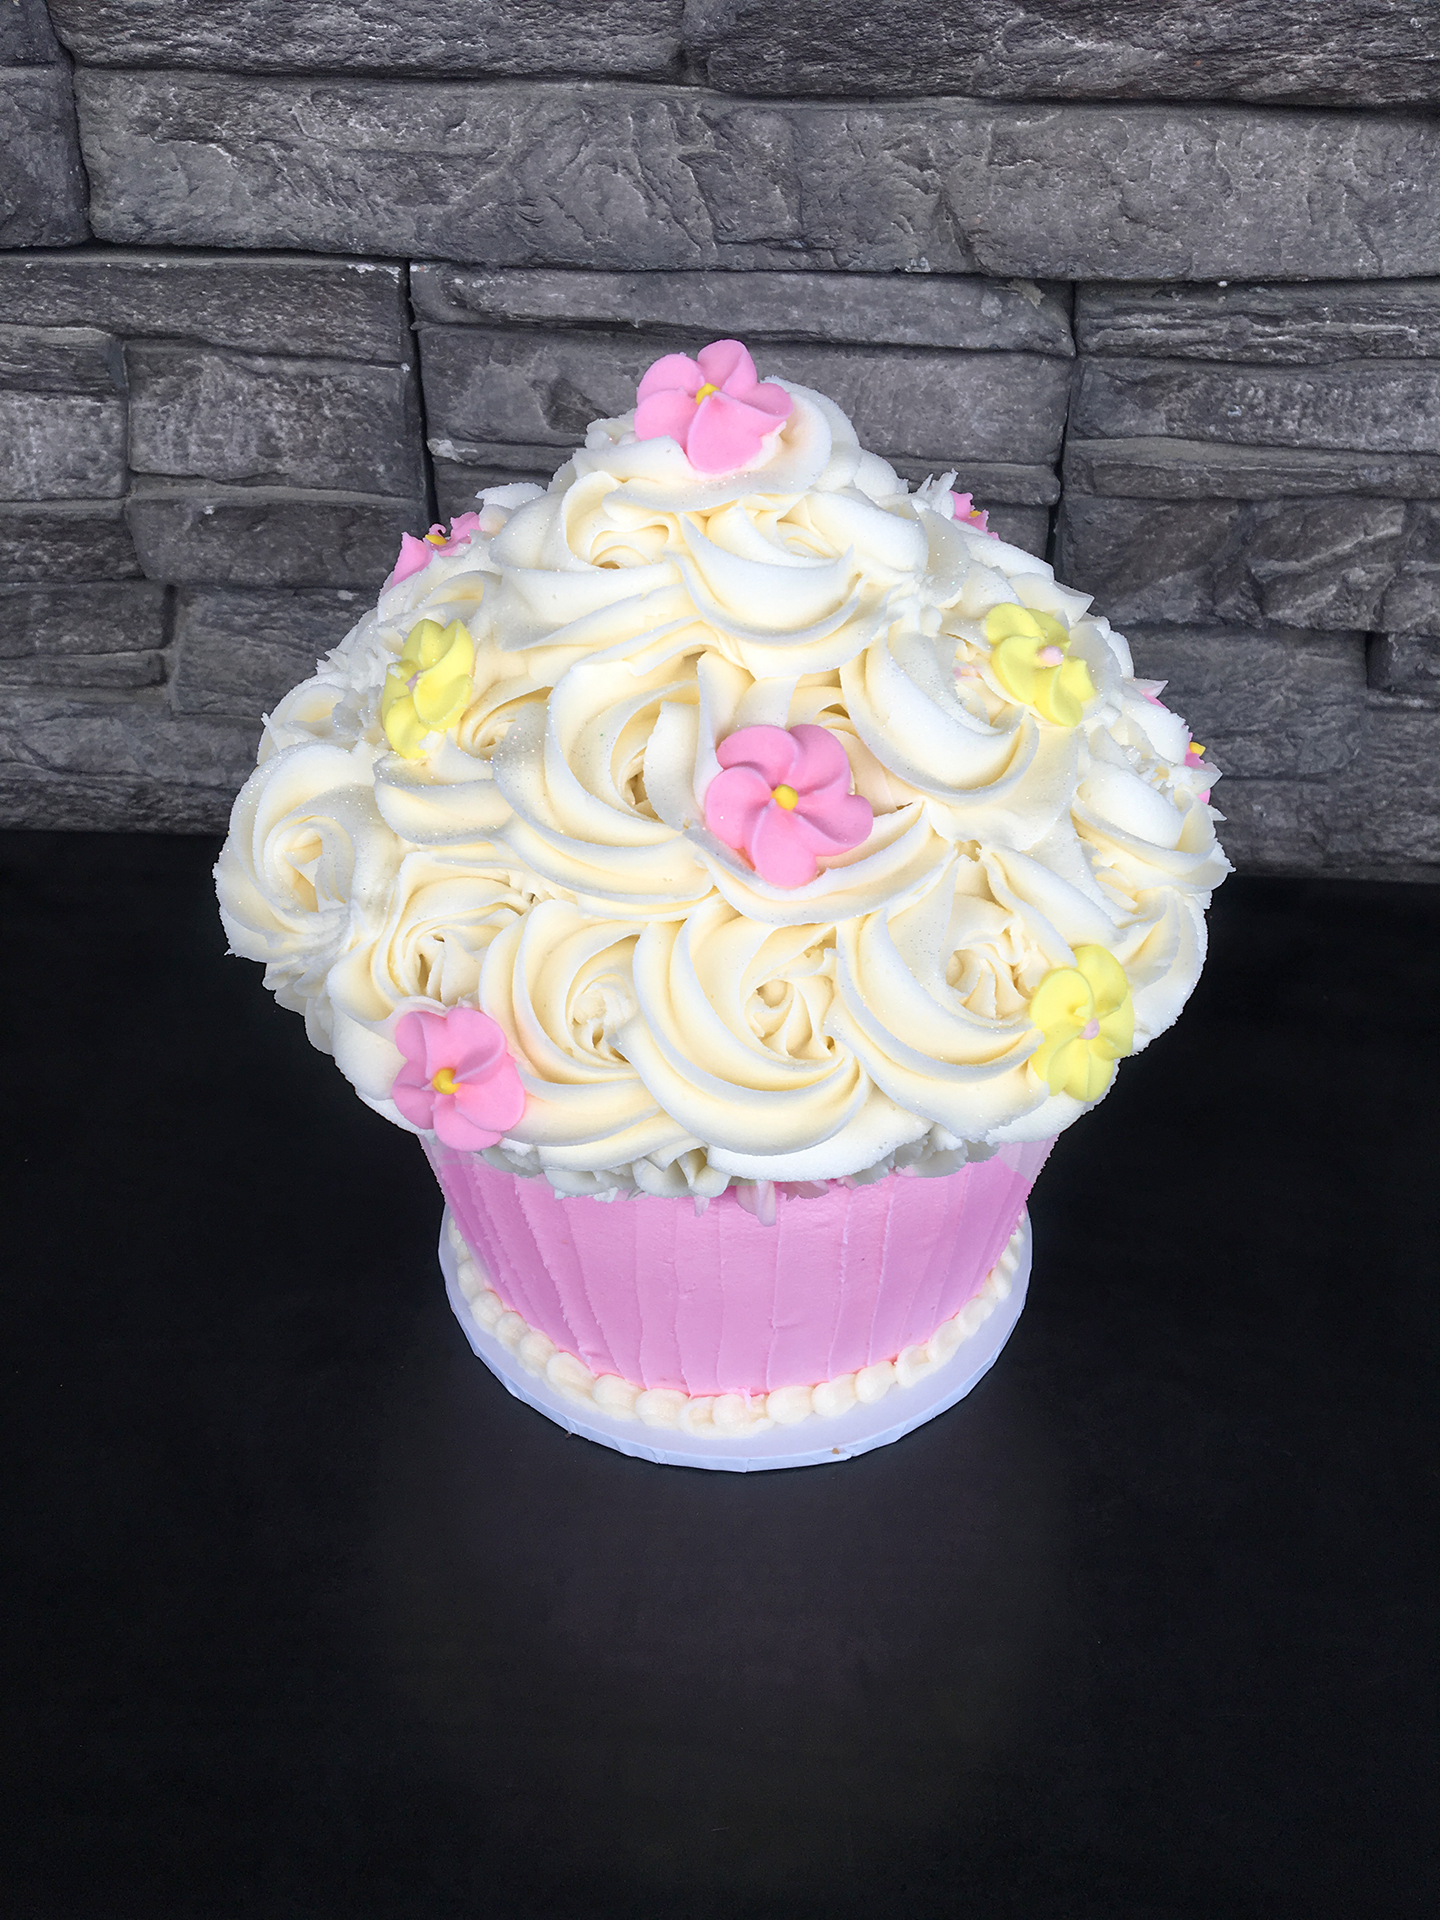 Giant Cupcake Birthday Cake Description